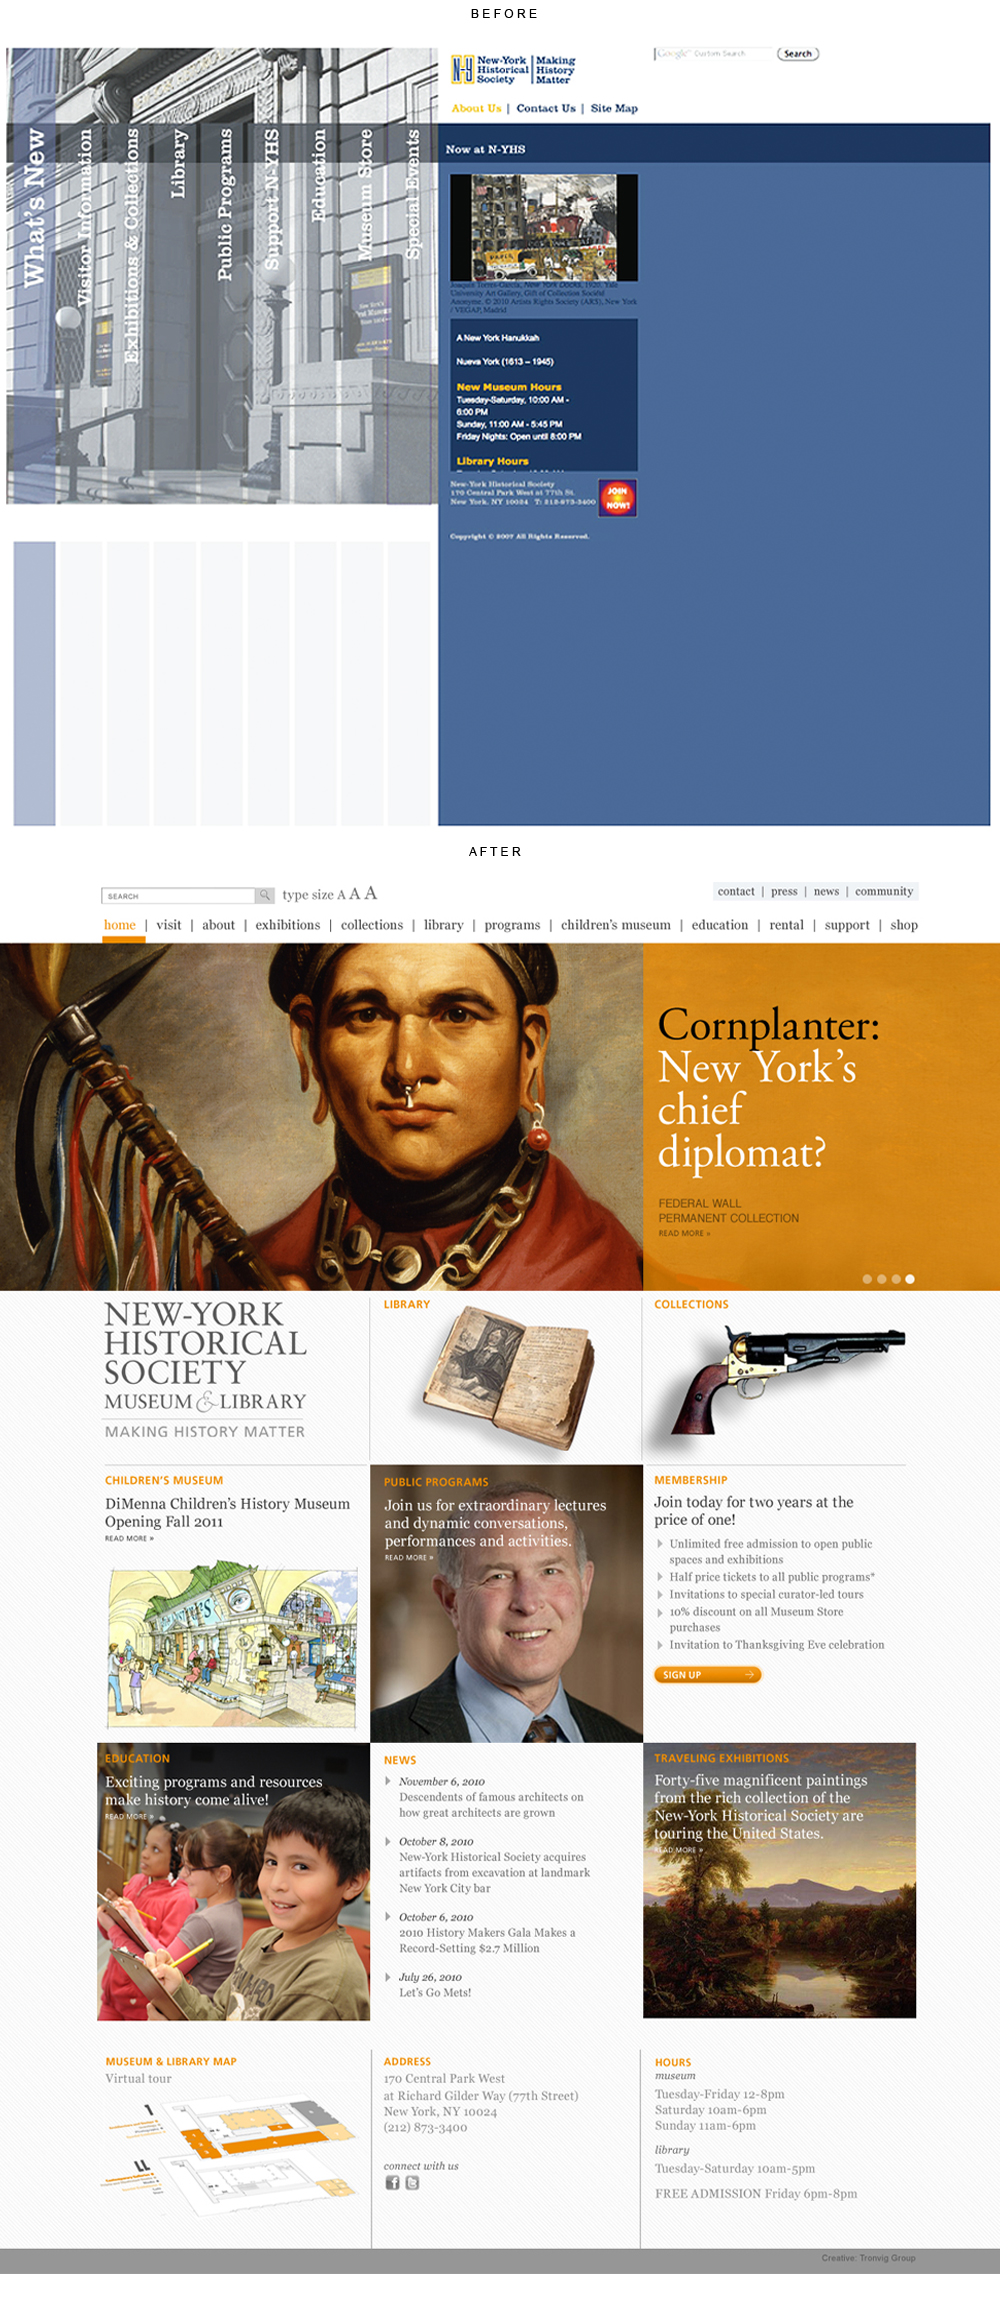 New-York Historical Society Museum website design